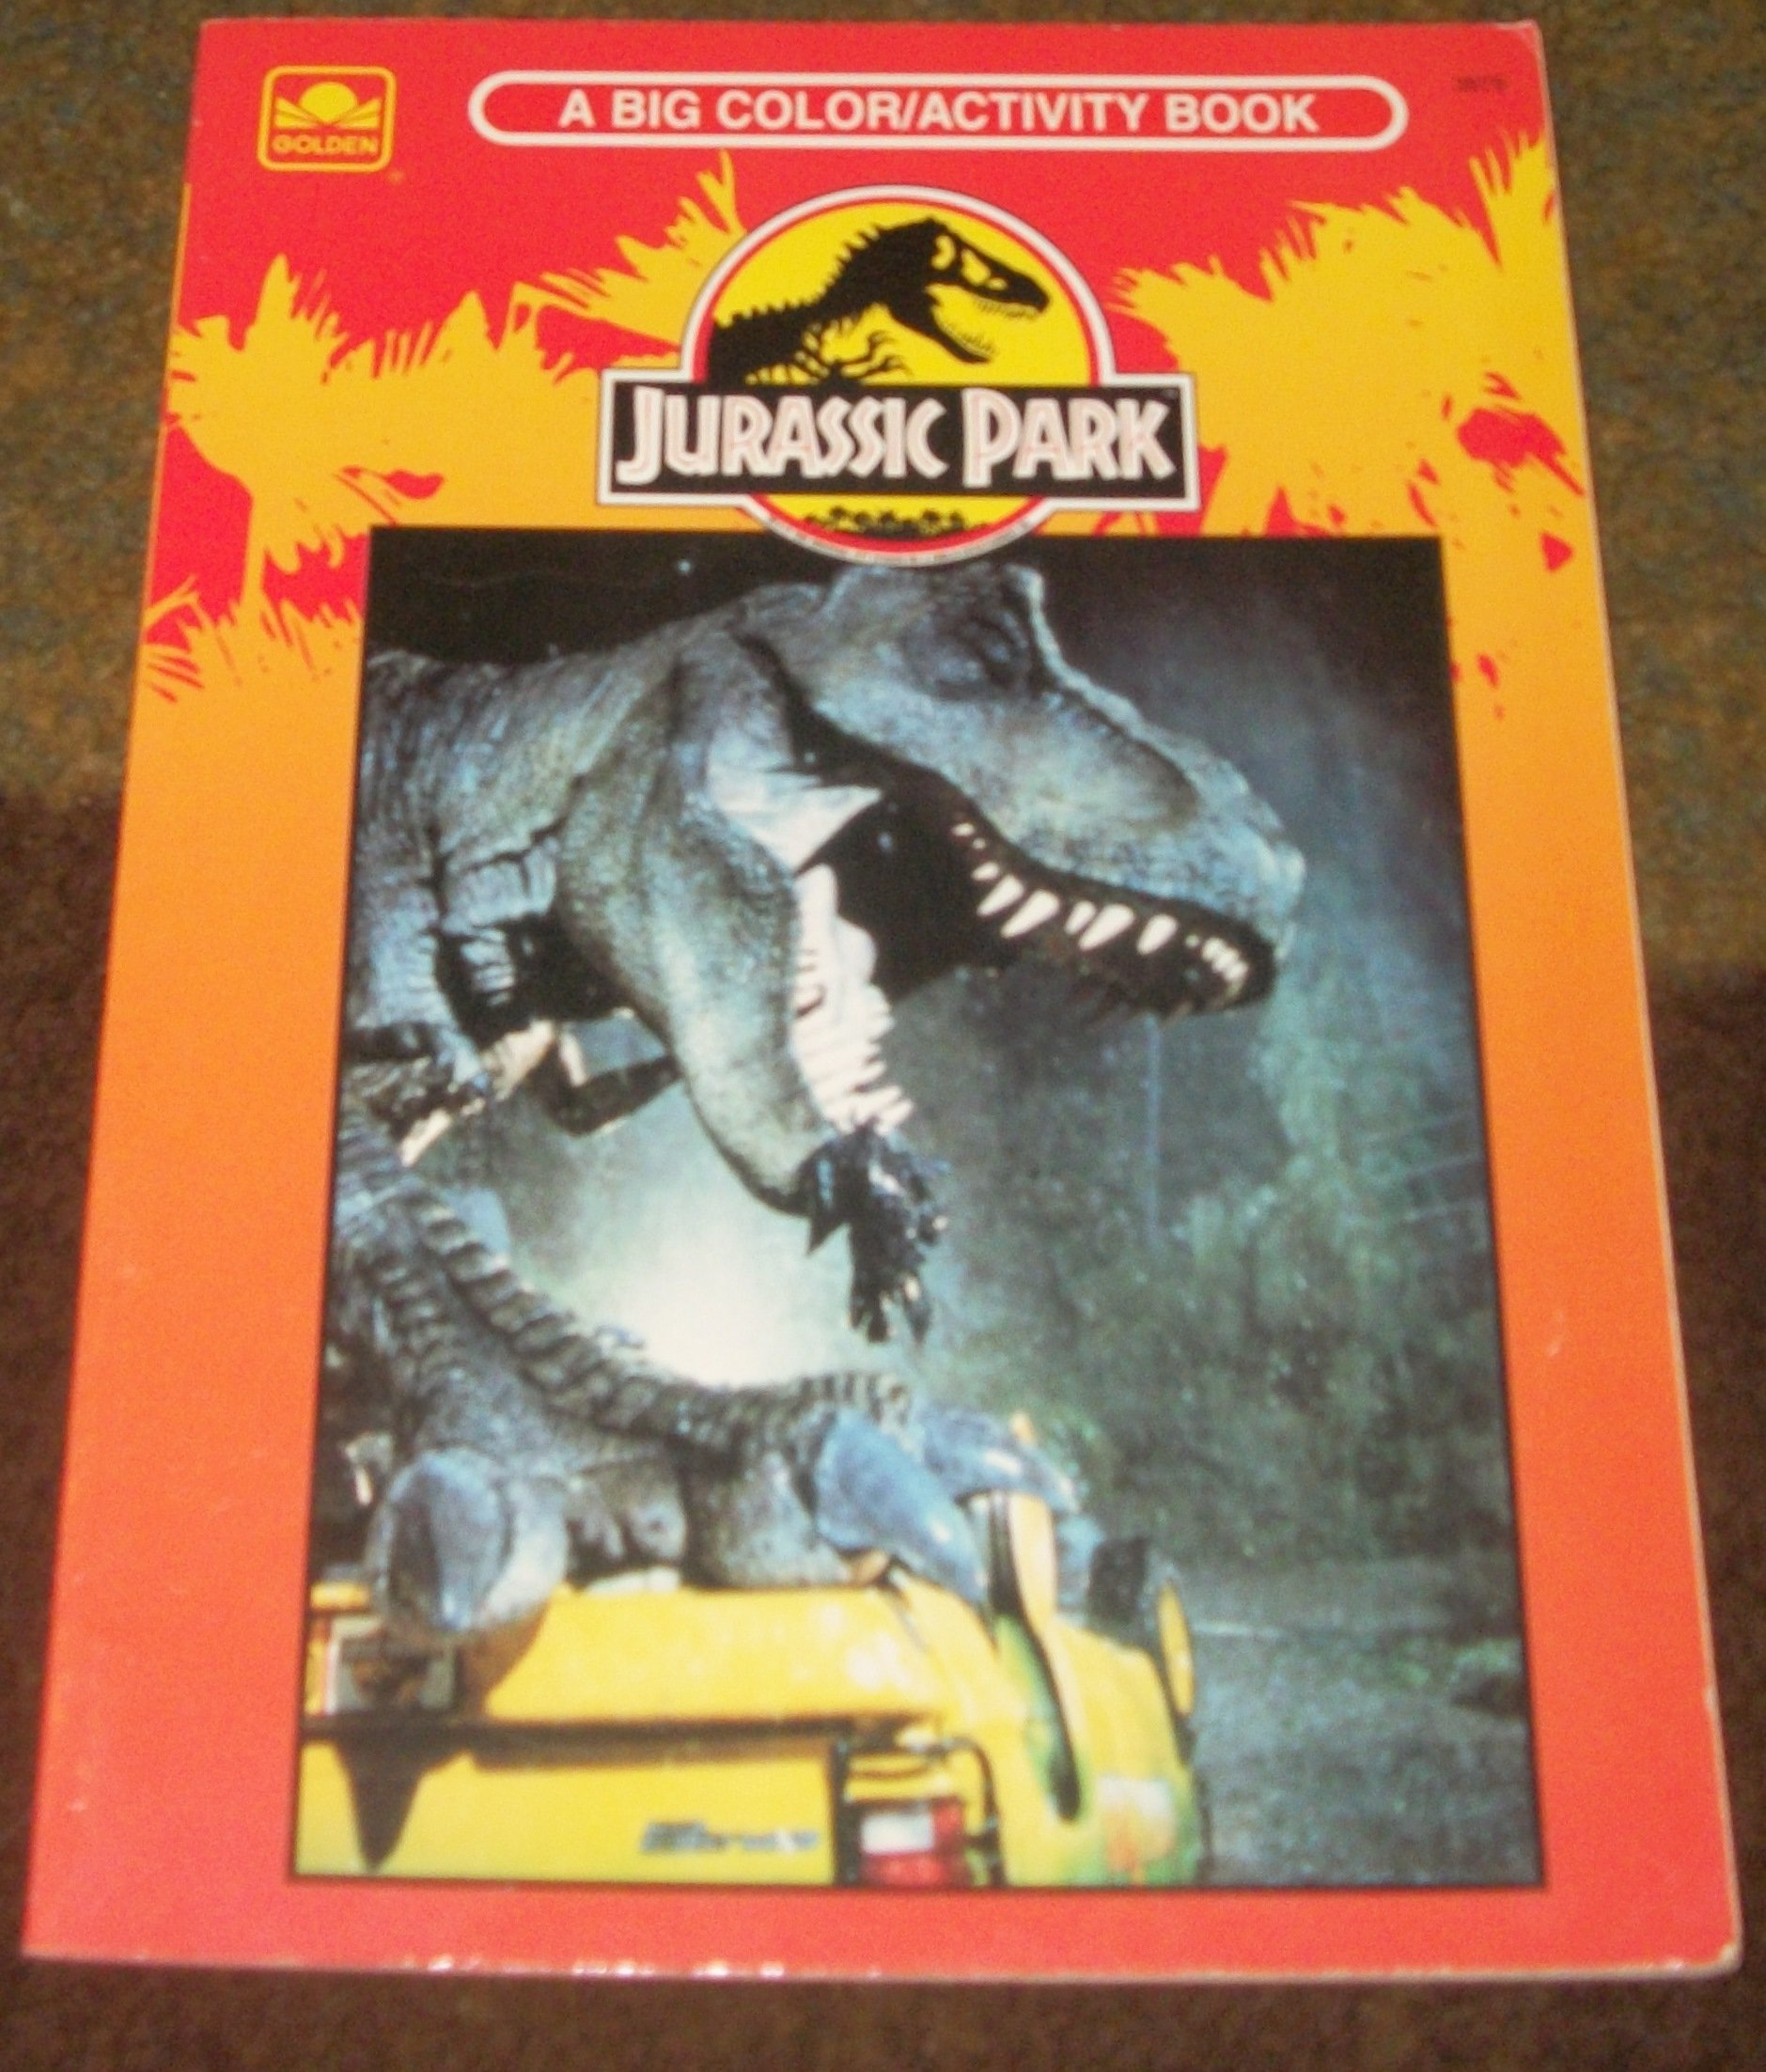 Jurassic Park The Colouring Books Bk 1 Golden 9780307039798 Amazon